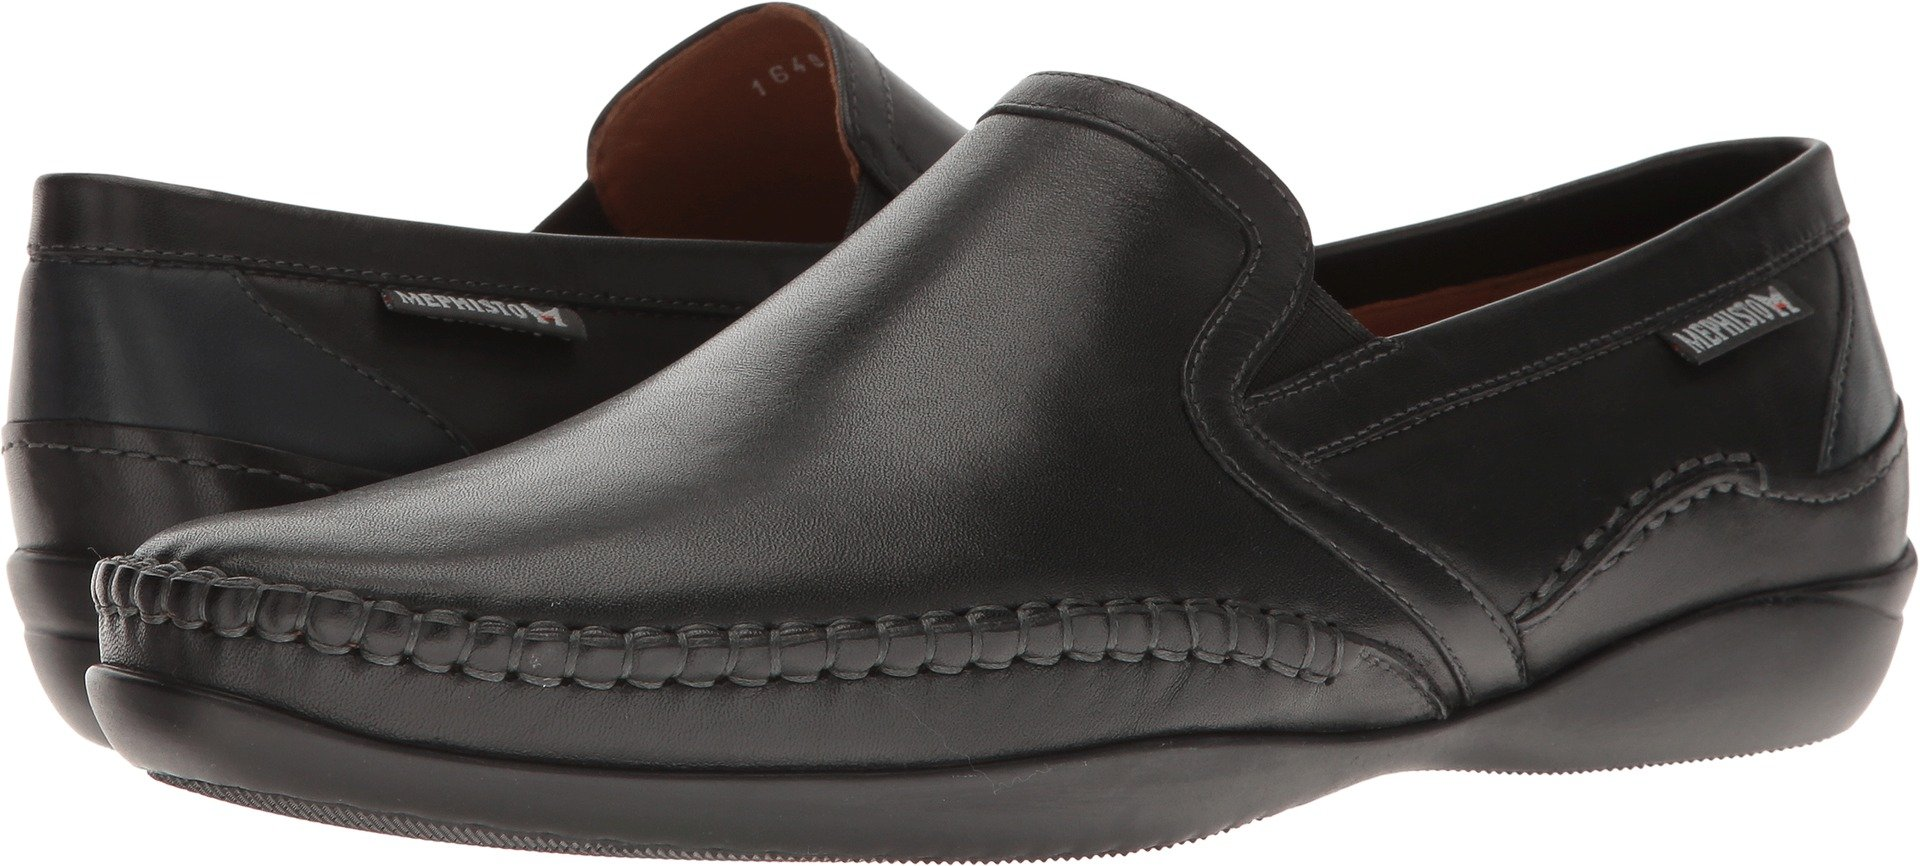 Mephisto Men's Irwan Moc Toe Loafer,Black/Navy Joachim Leather,US 12 M by Mephisto